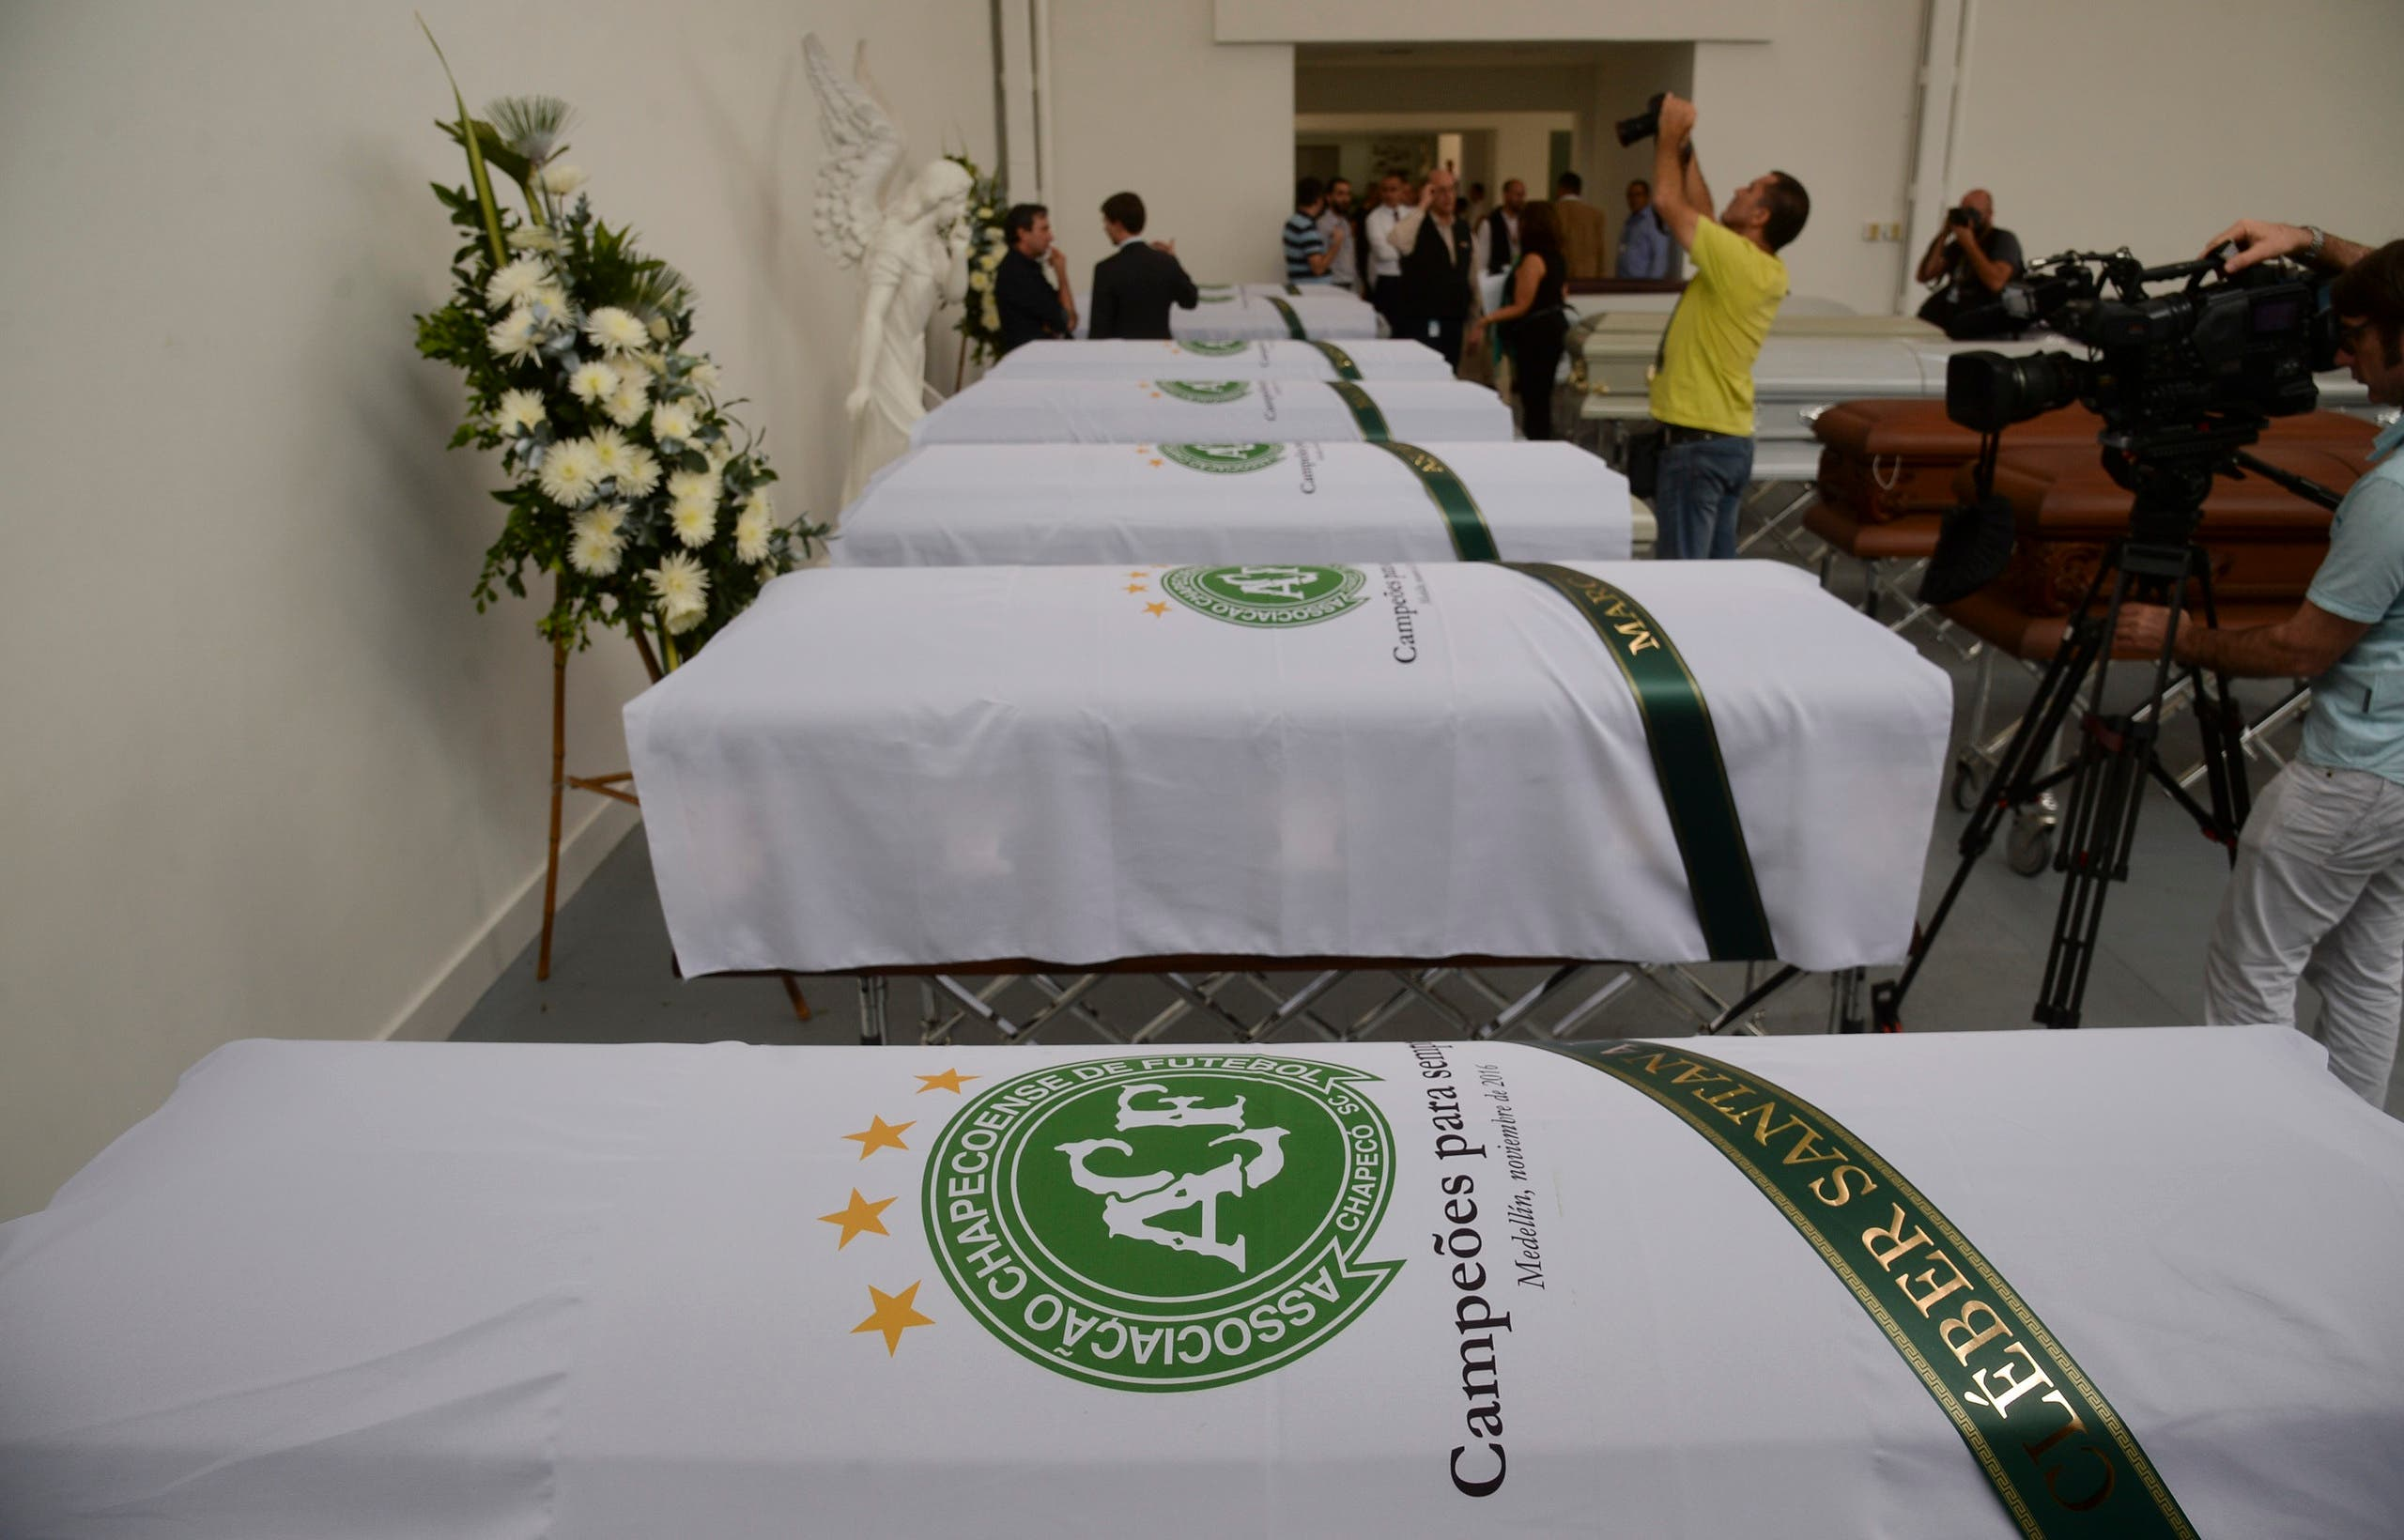 The coffin containing the remains of Brazilian football team Chapecoense Real's players Cleber Santana (foreground), killed in a plane crash in the Colombian mountains, is seen at the San Vicente mortuary in Medellin on December 1, 2016. The pilot of a charter plane carrying the Brazilian football team Chapecoense Real radioed frantically that he was out of fuel minutes before slamming into a hillside near Medellin with 77 people on board, an audio recording showed. Raul ARBOLEDA / AFP